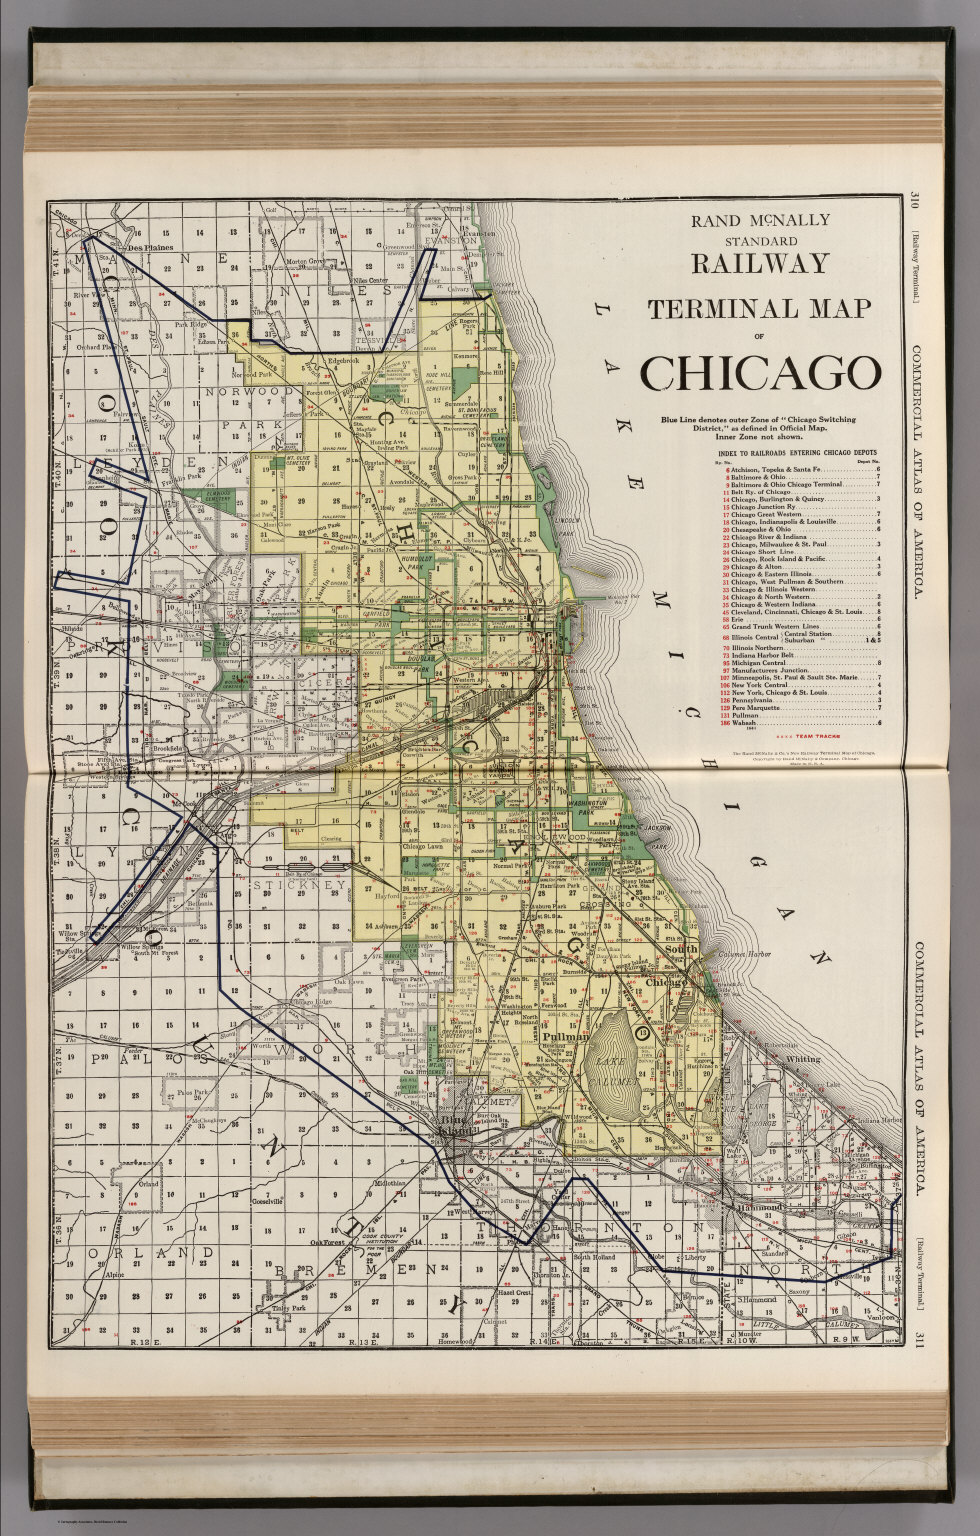 Railway Terminal Map Of Chicago David Rumsey Historical Map - Chicago terminal map